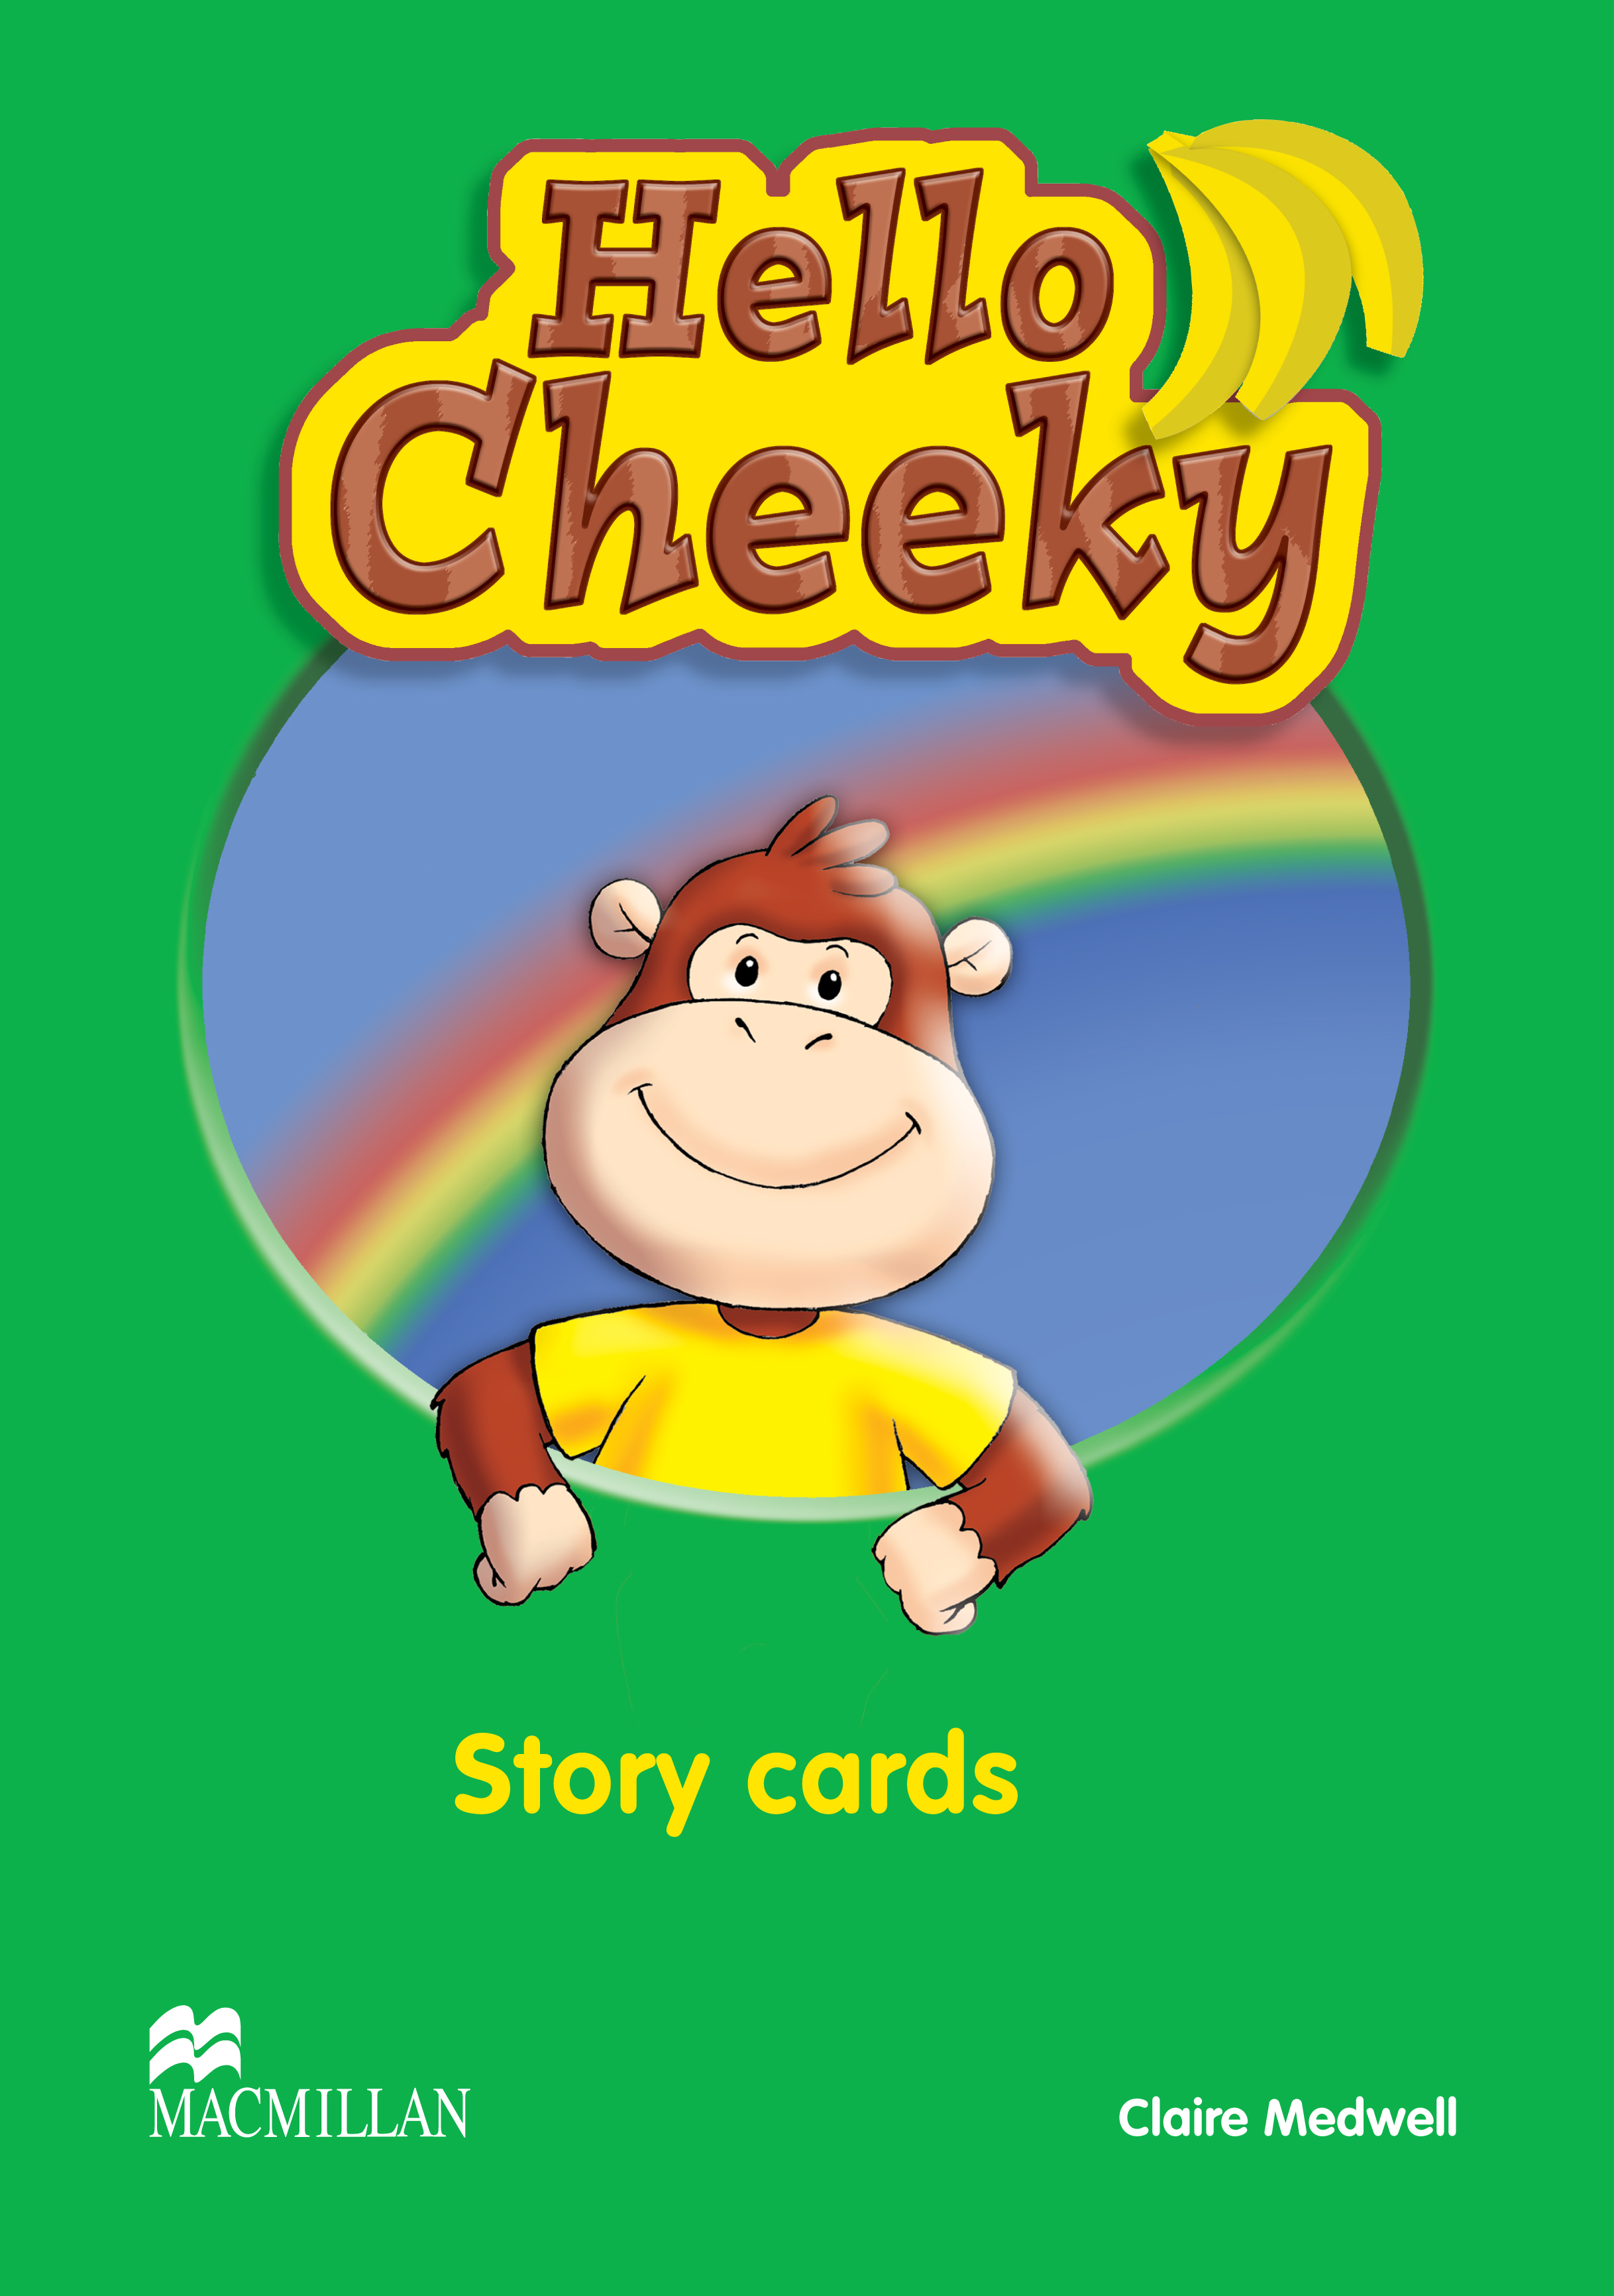 Hello Cheeky Story Cards